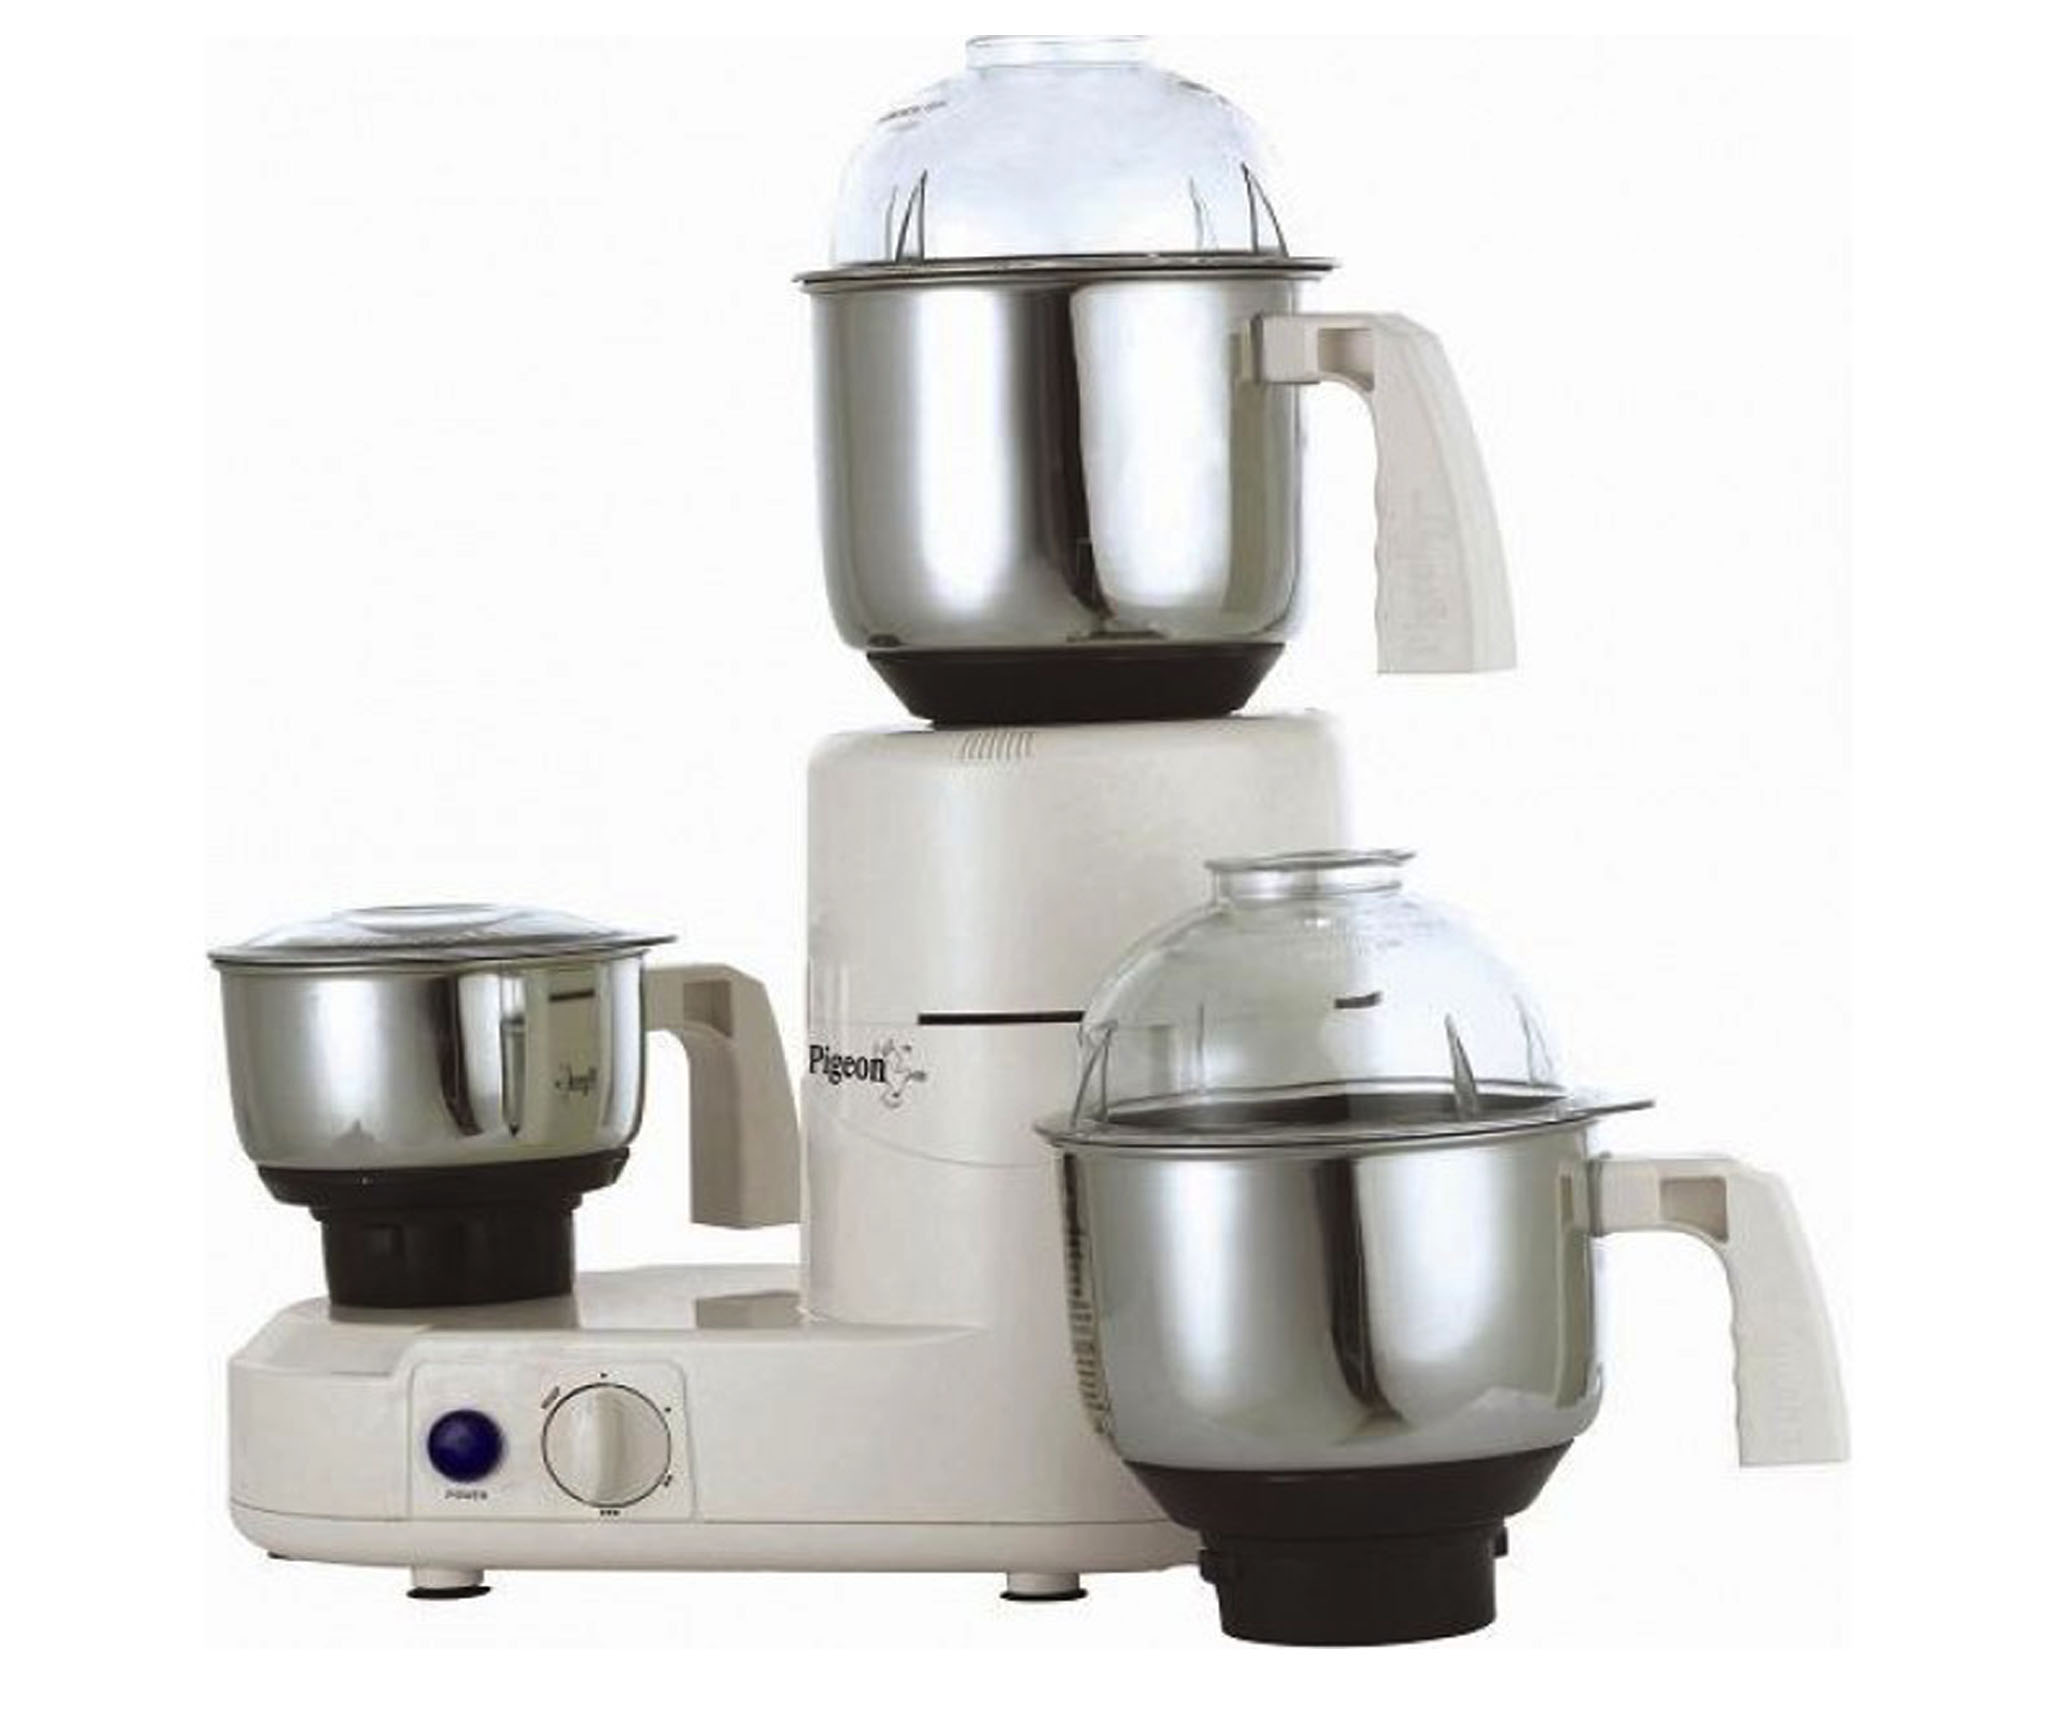 Kitchen mate mixer Photo - 6